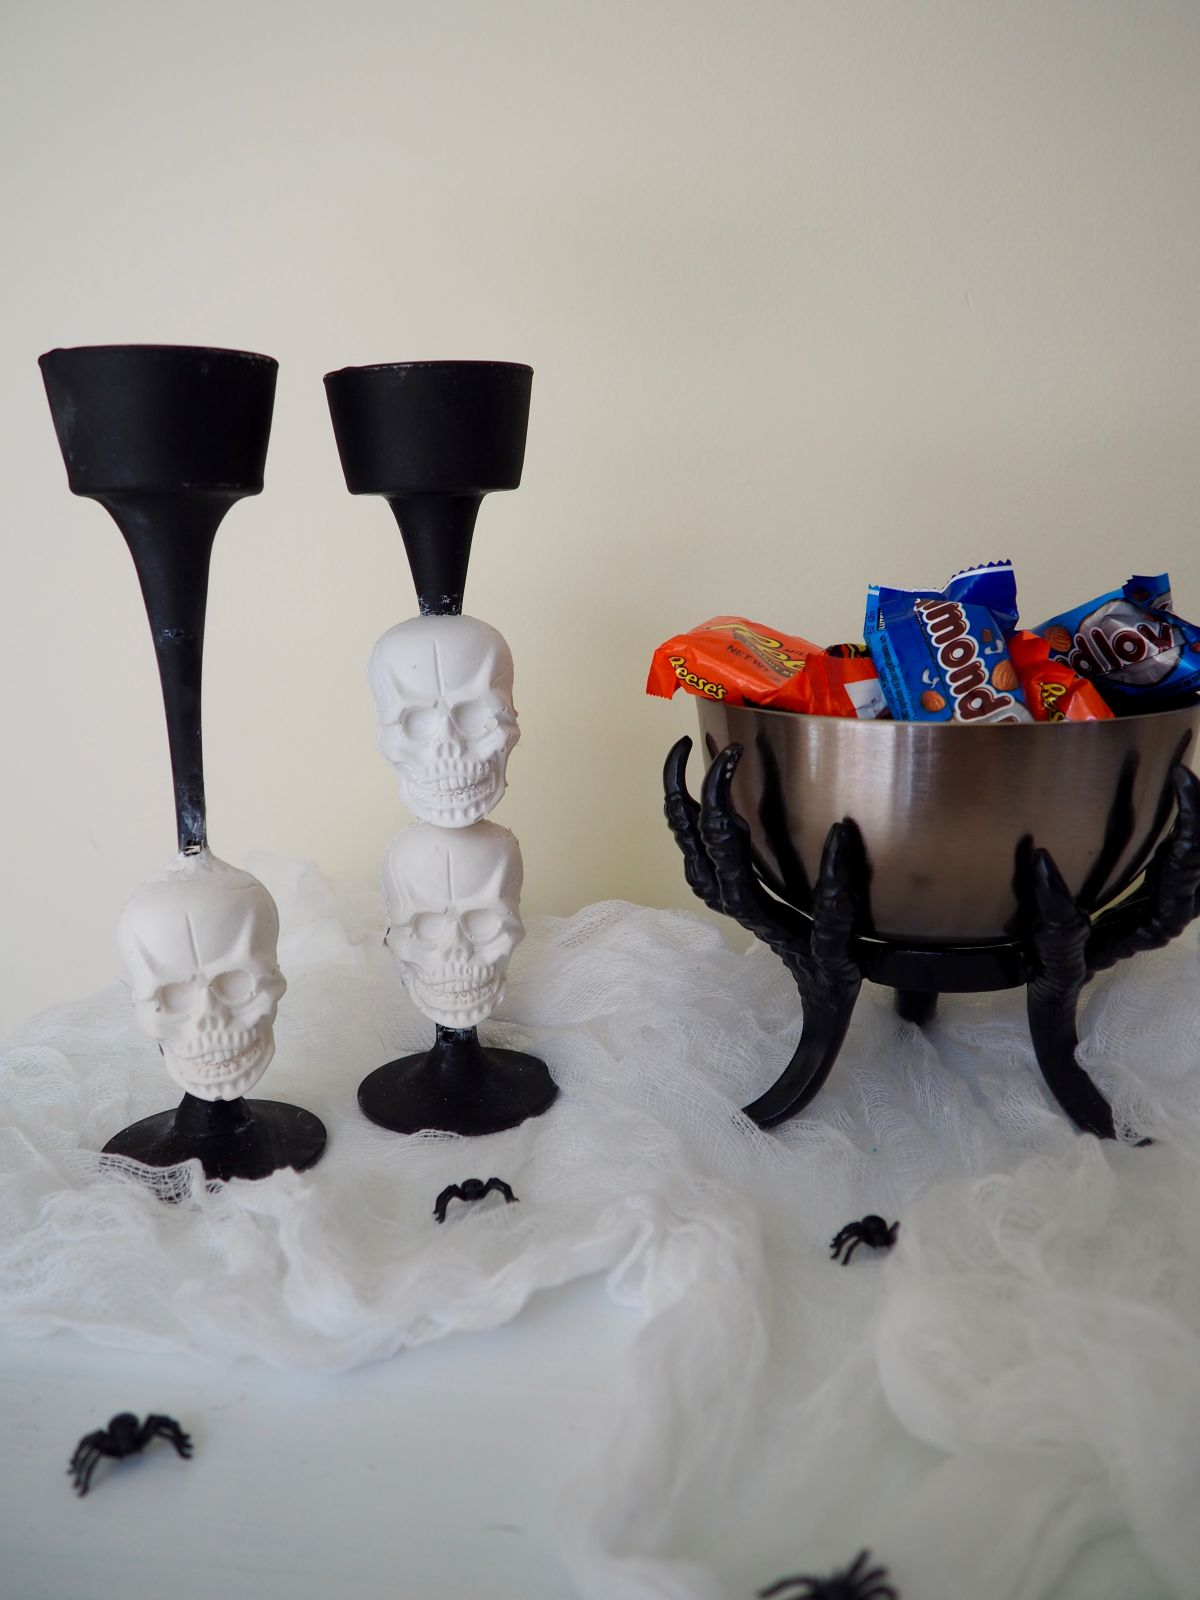 1570526989 593 start the spooky season in style with some amazing skull crafts - Start The Spooky Season In Style With Some Amazing Skull Crafts